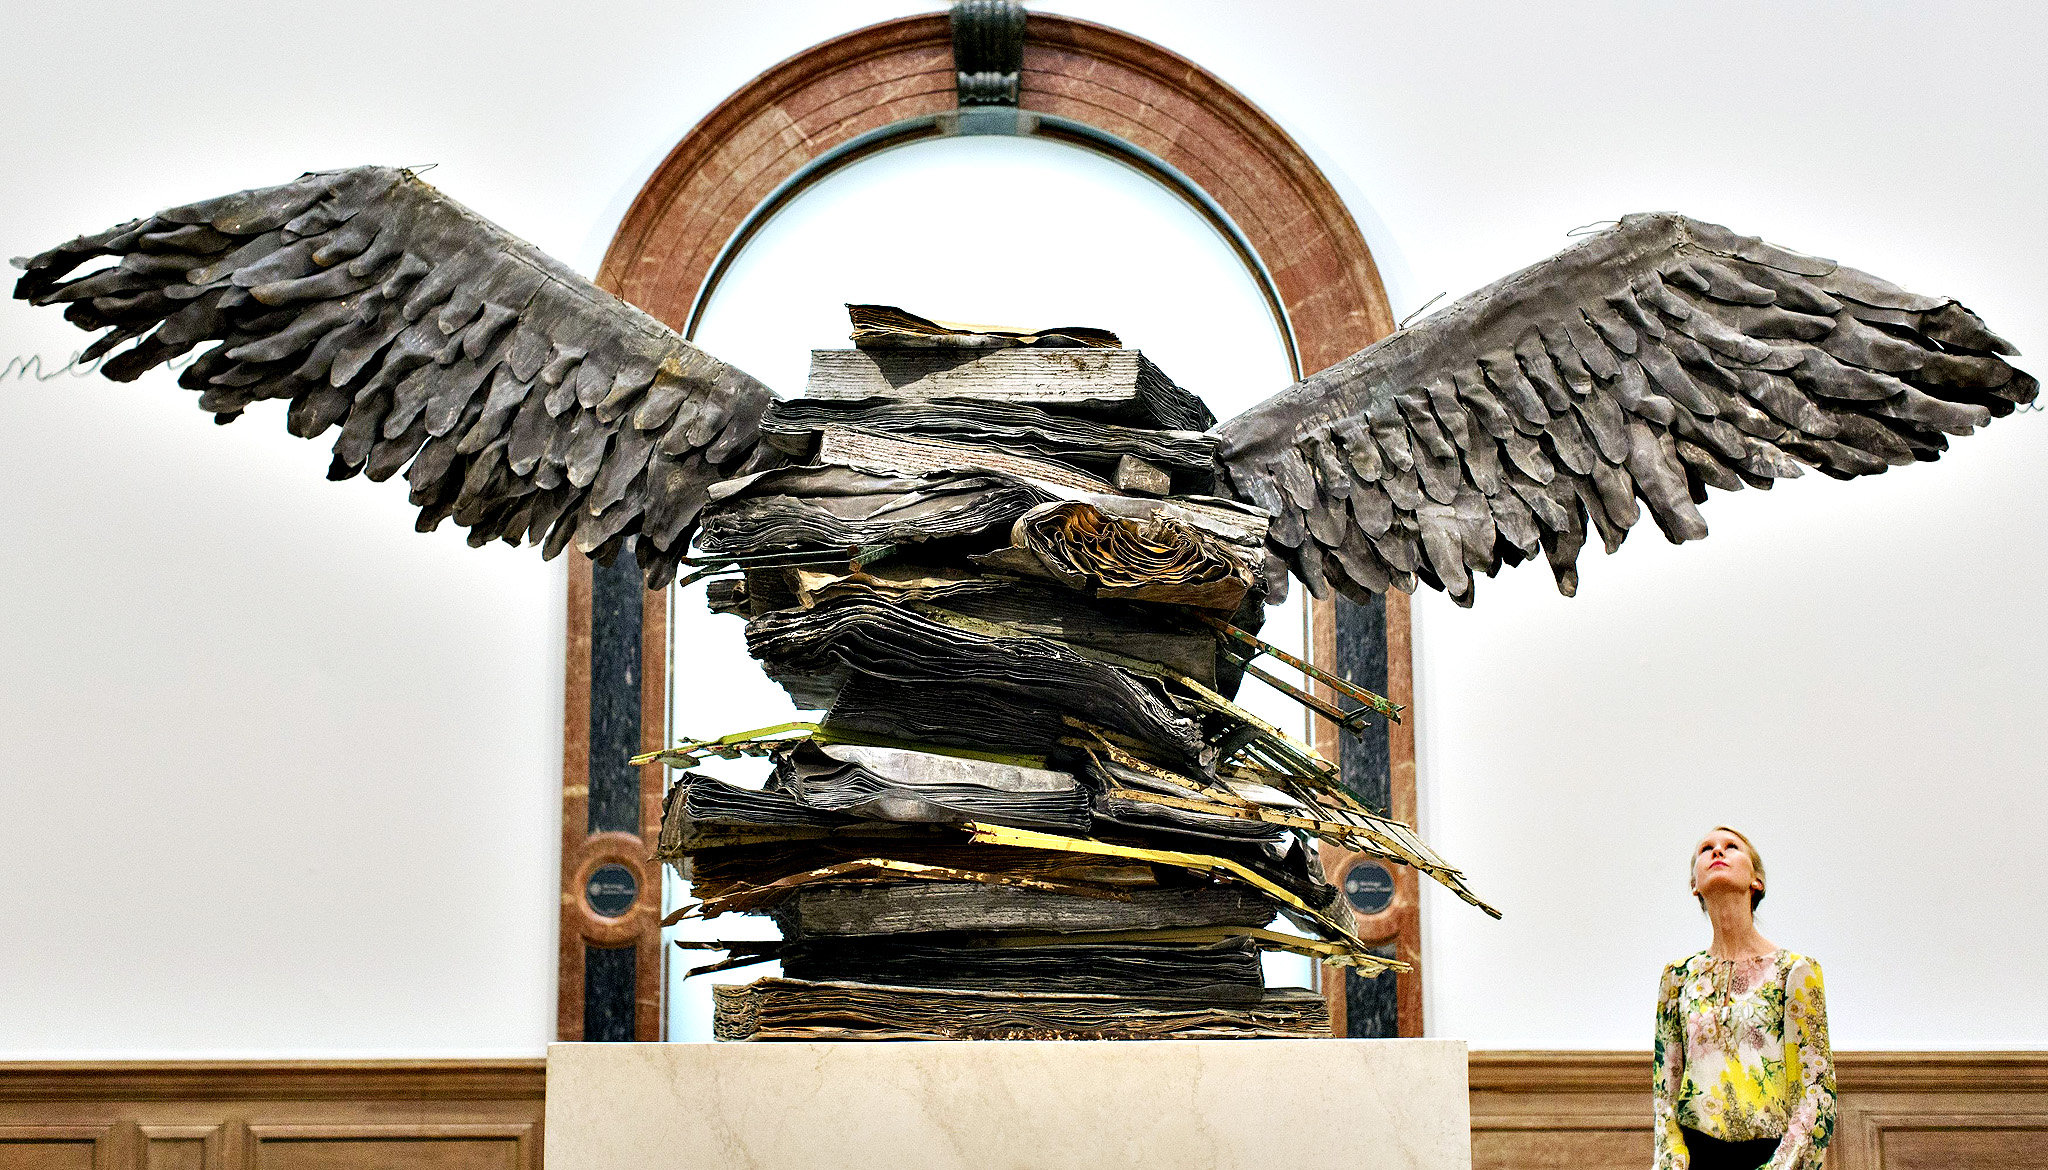 A gallery assistant stands next to 'Language of The Birds' by Anselm Kiefer, which forms part of a major new exhibition at the Royal Academy of Arts, in London.